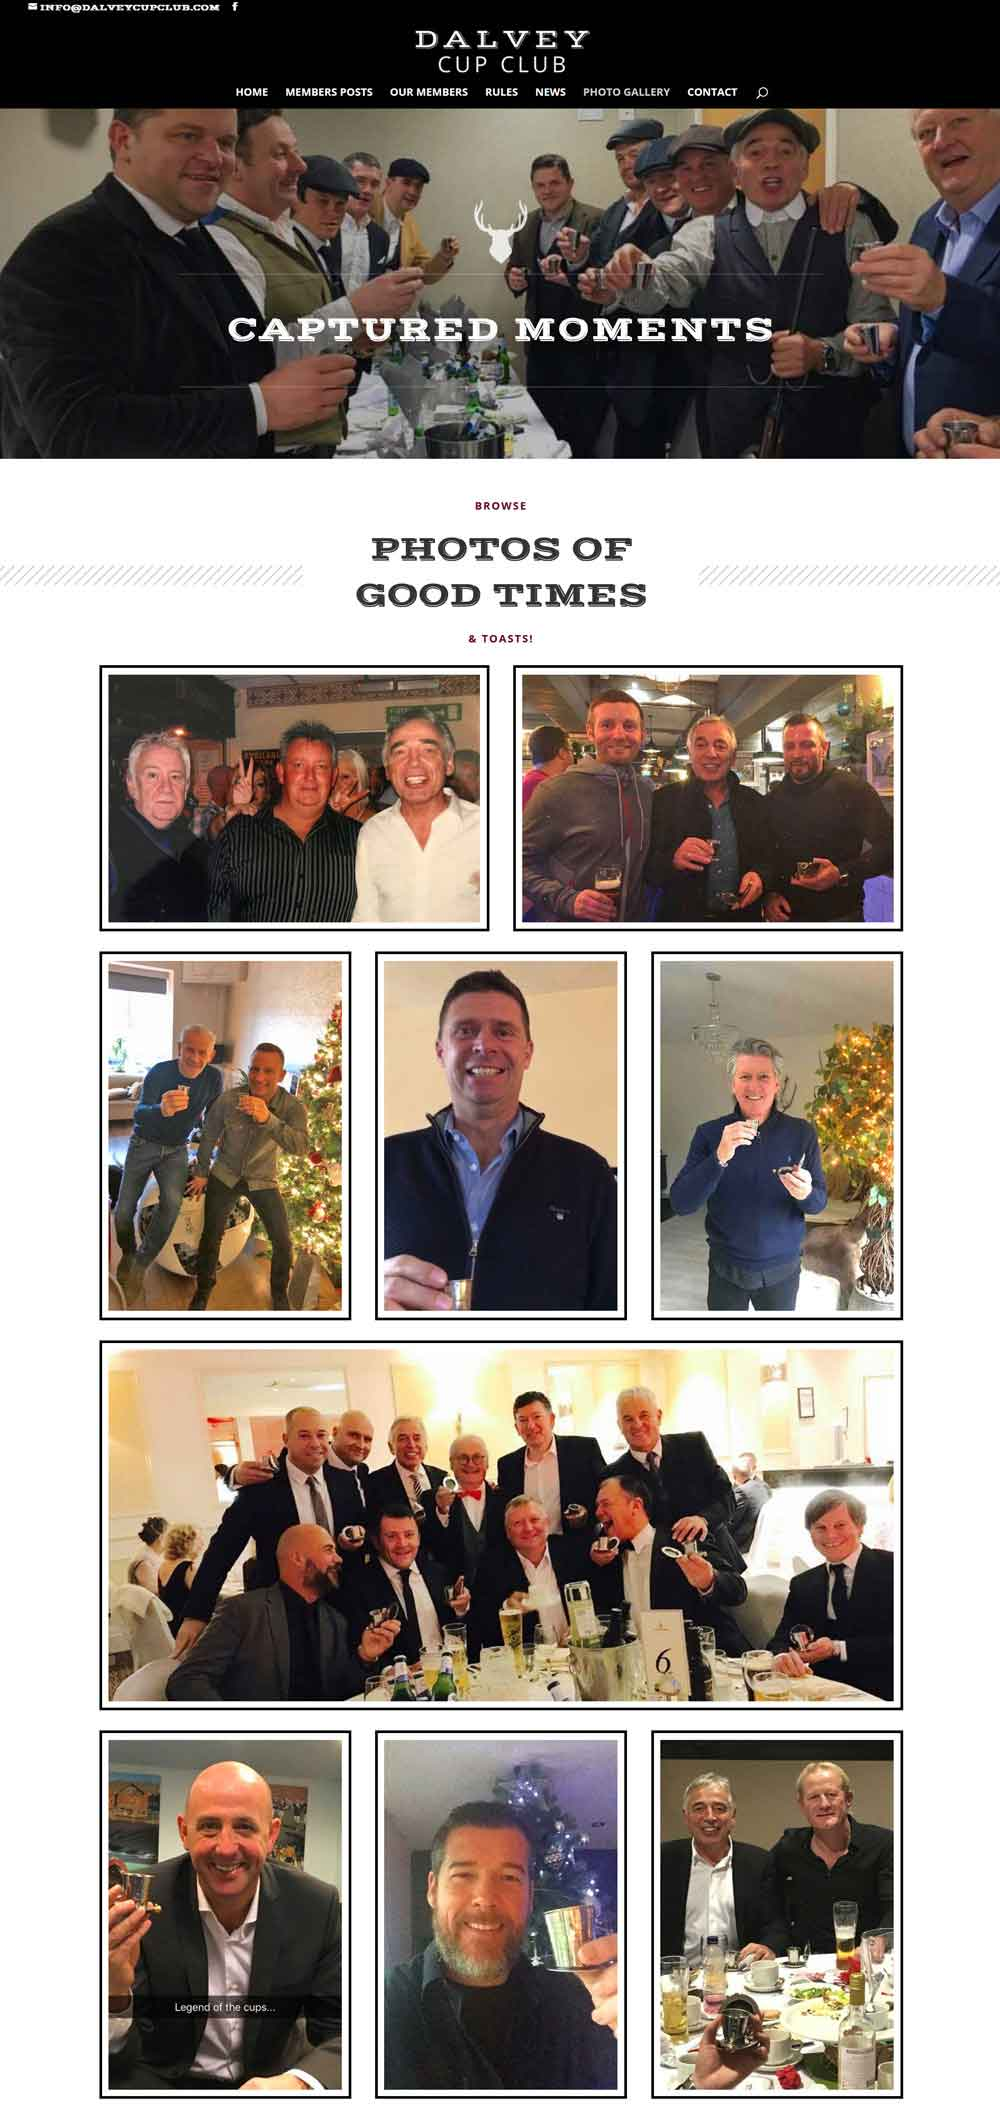 Browse the Members Photo Gallery - Dalvey Cup Club